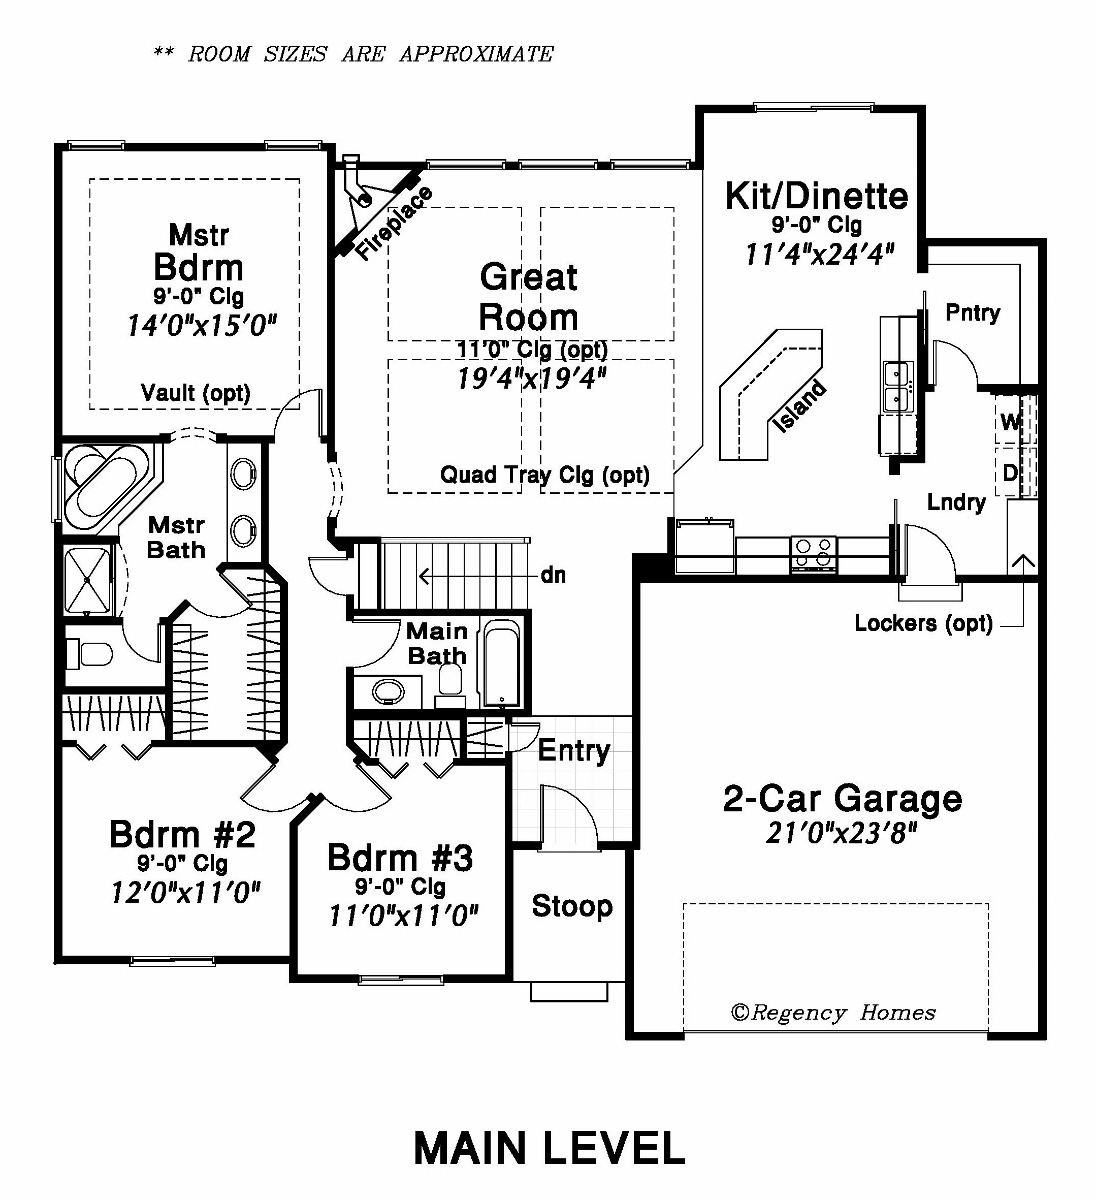 The Main Level Of This Lovely Floor Plan Includes A Spacious Master Bedroom  Suite. The Master Bath Has A Soaking Tub And Separate Shower, Private Toilet,  ...